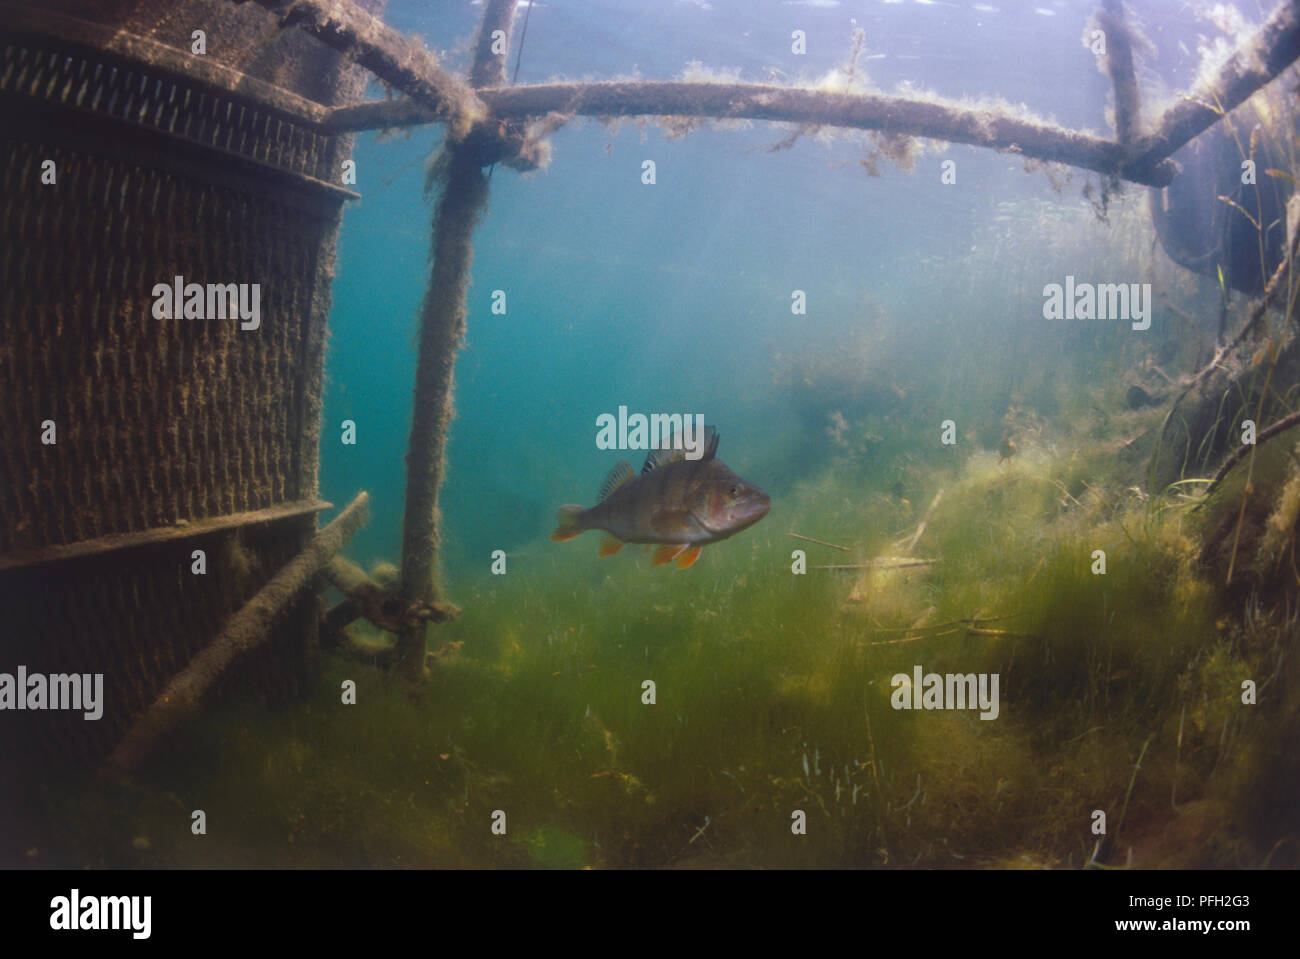 Underwater shot of a perch swimming in green murky water beneath a jetty structure covered in algae. - Stock Image